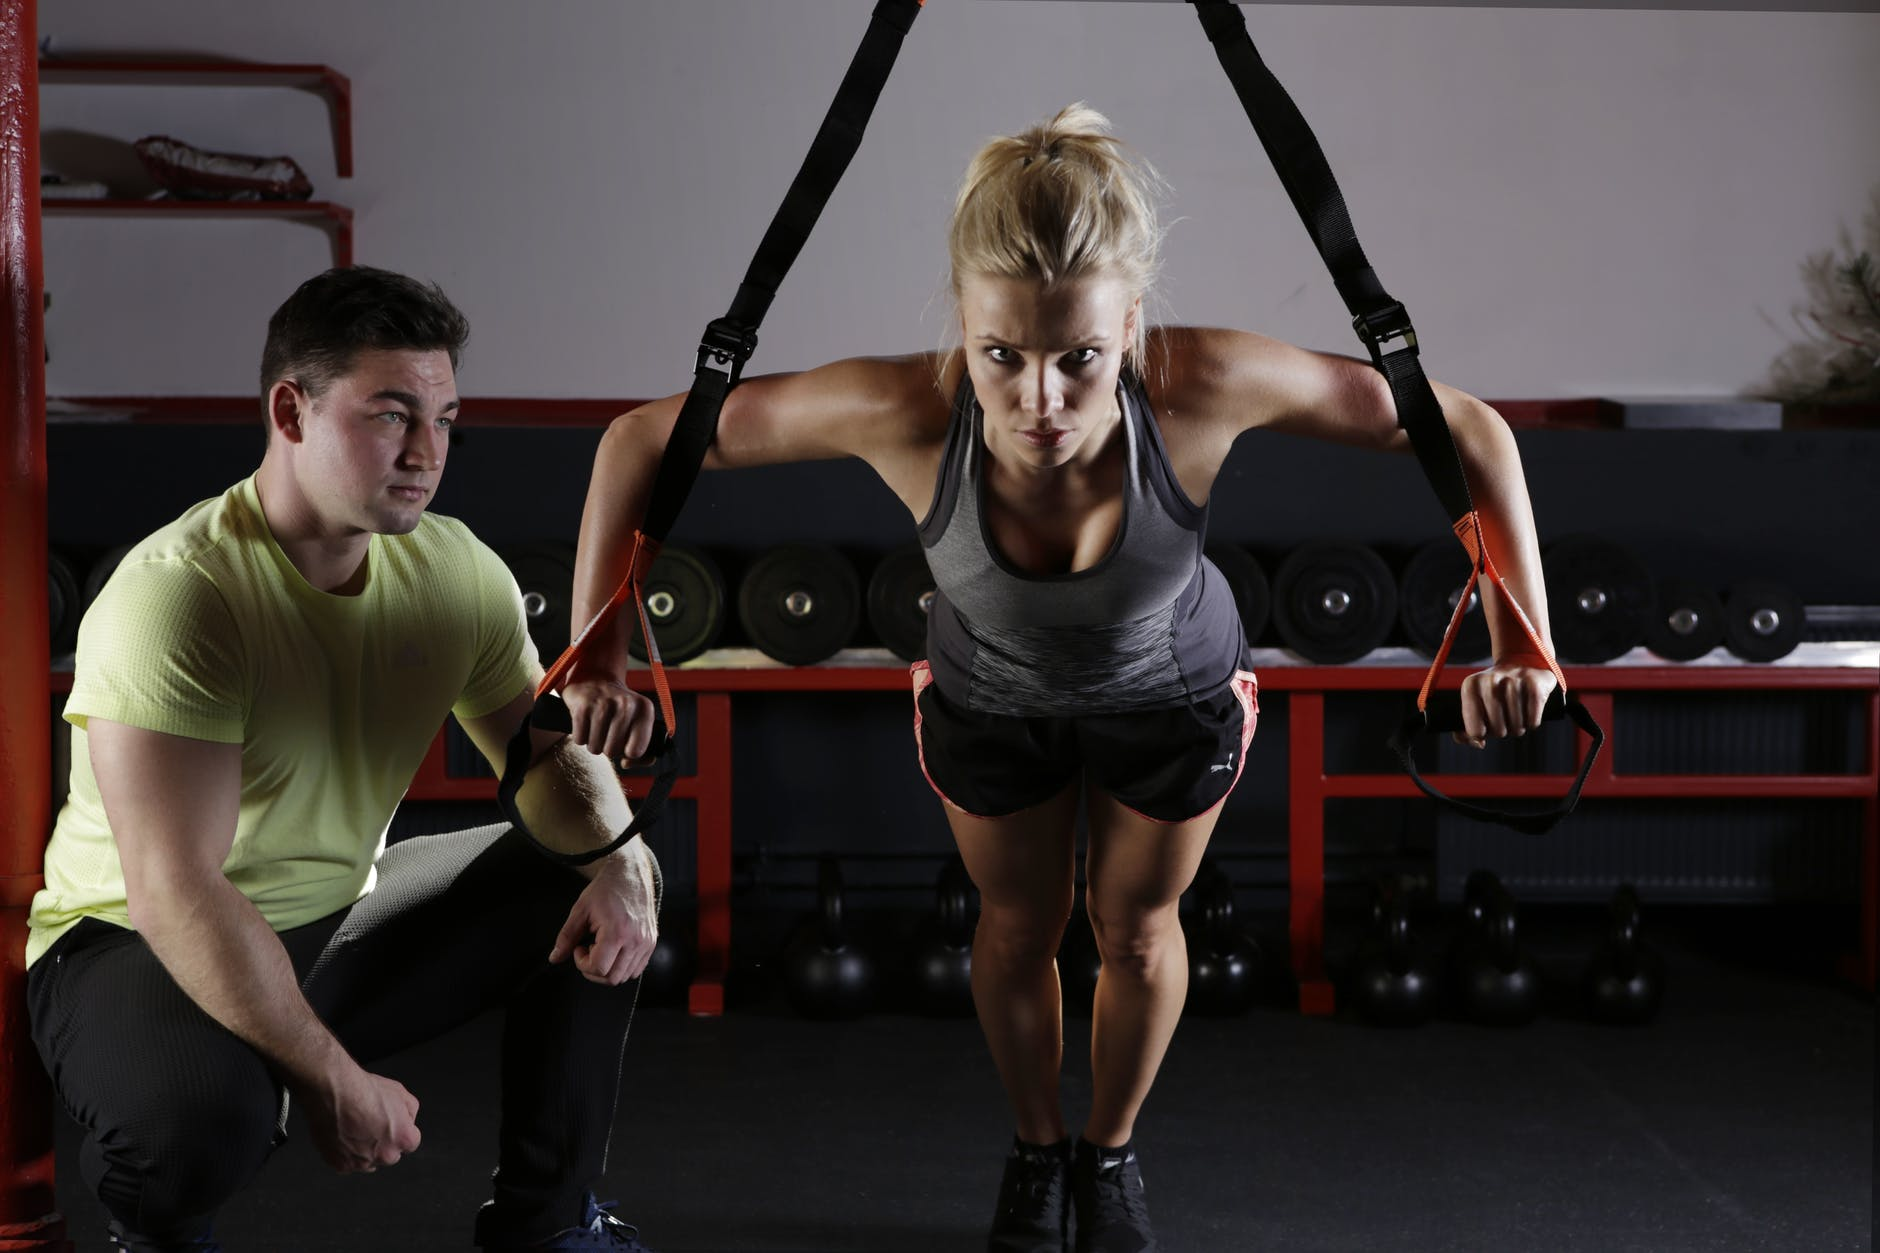 Core power Exercises for Women